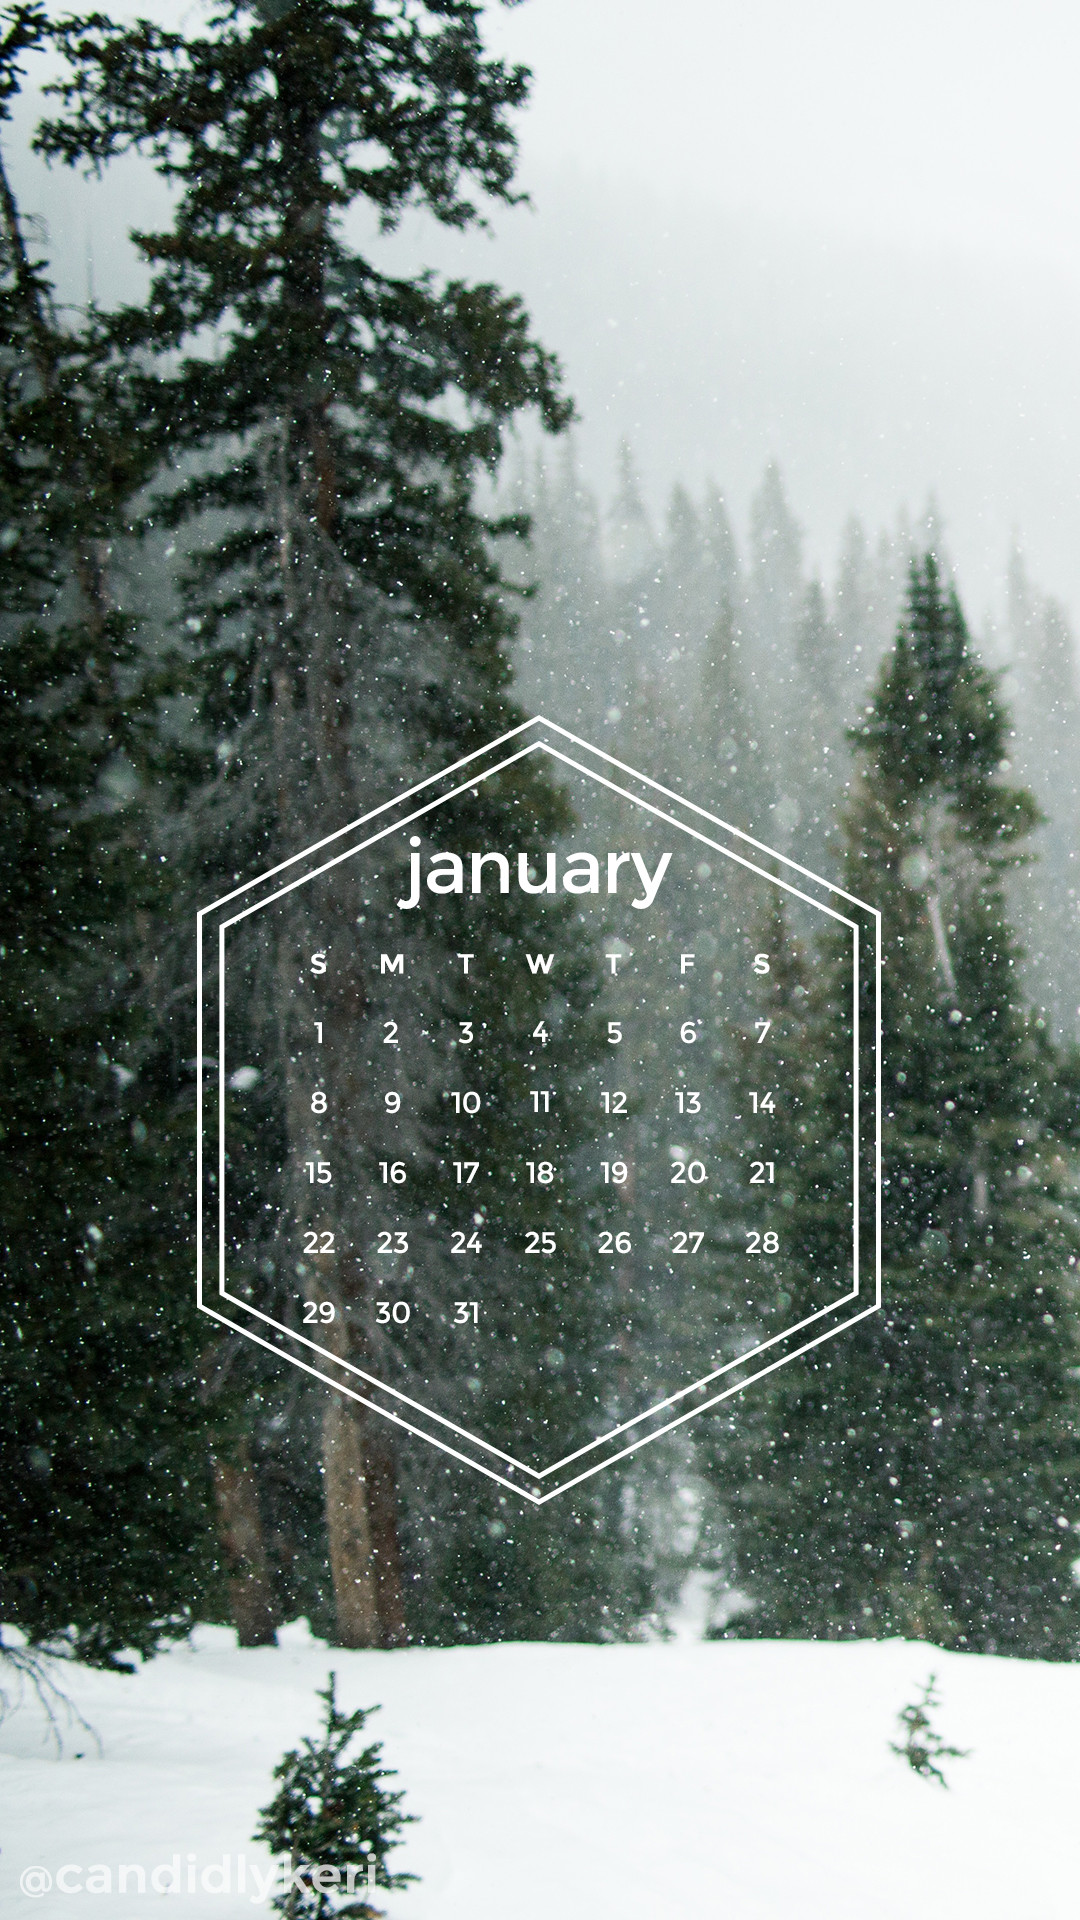 1080x1920 Snow-forest-pine-trees-snowing-geometric-January -calendar-you-can-download-for-free-o-wallpaper-wp6809919